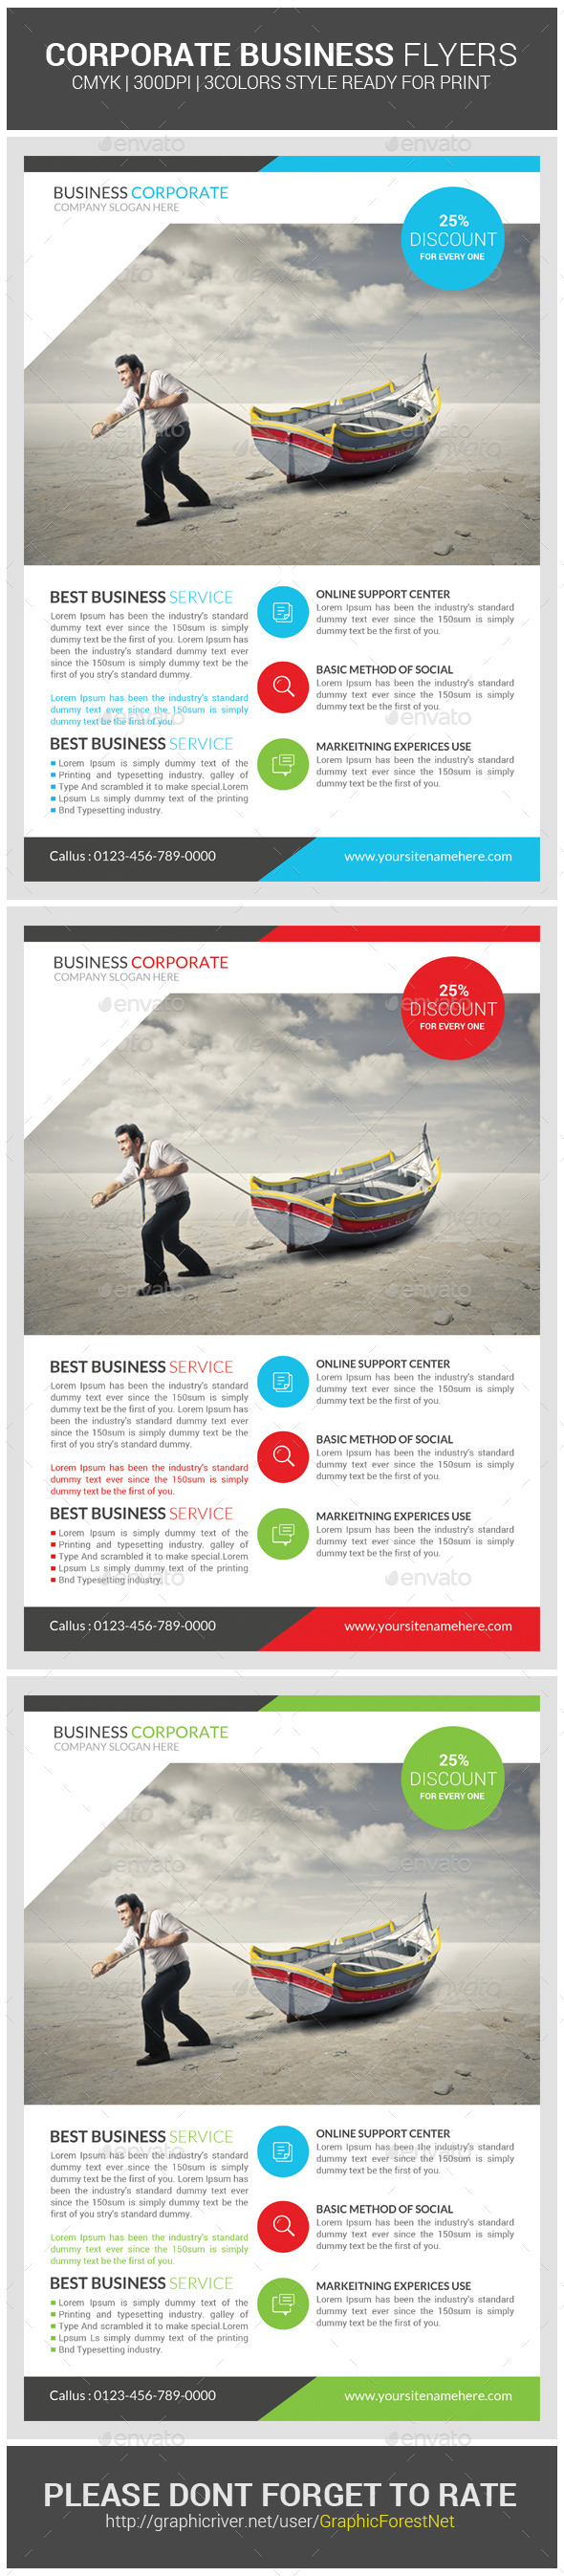 GraphicRiver Business Corporate Agency Flyer Psd Template 8978981